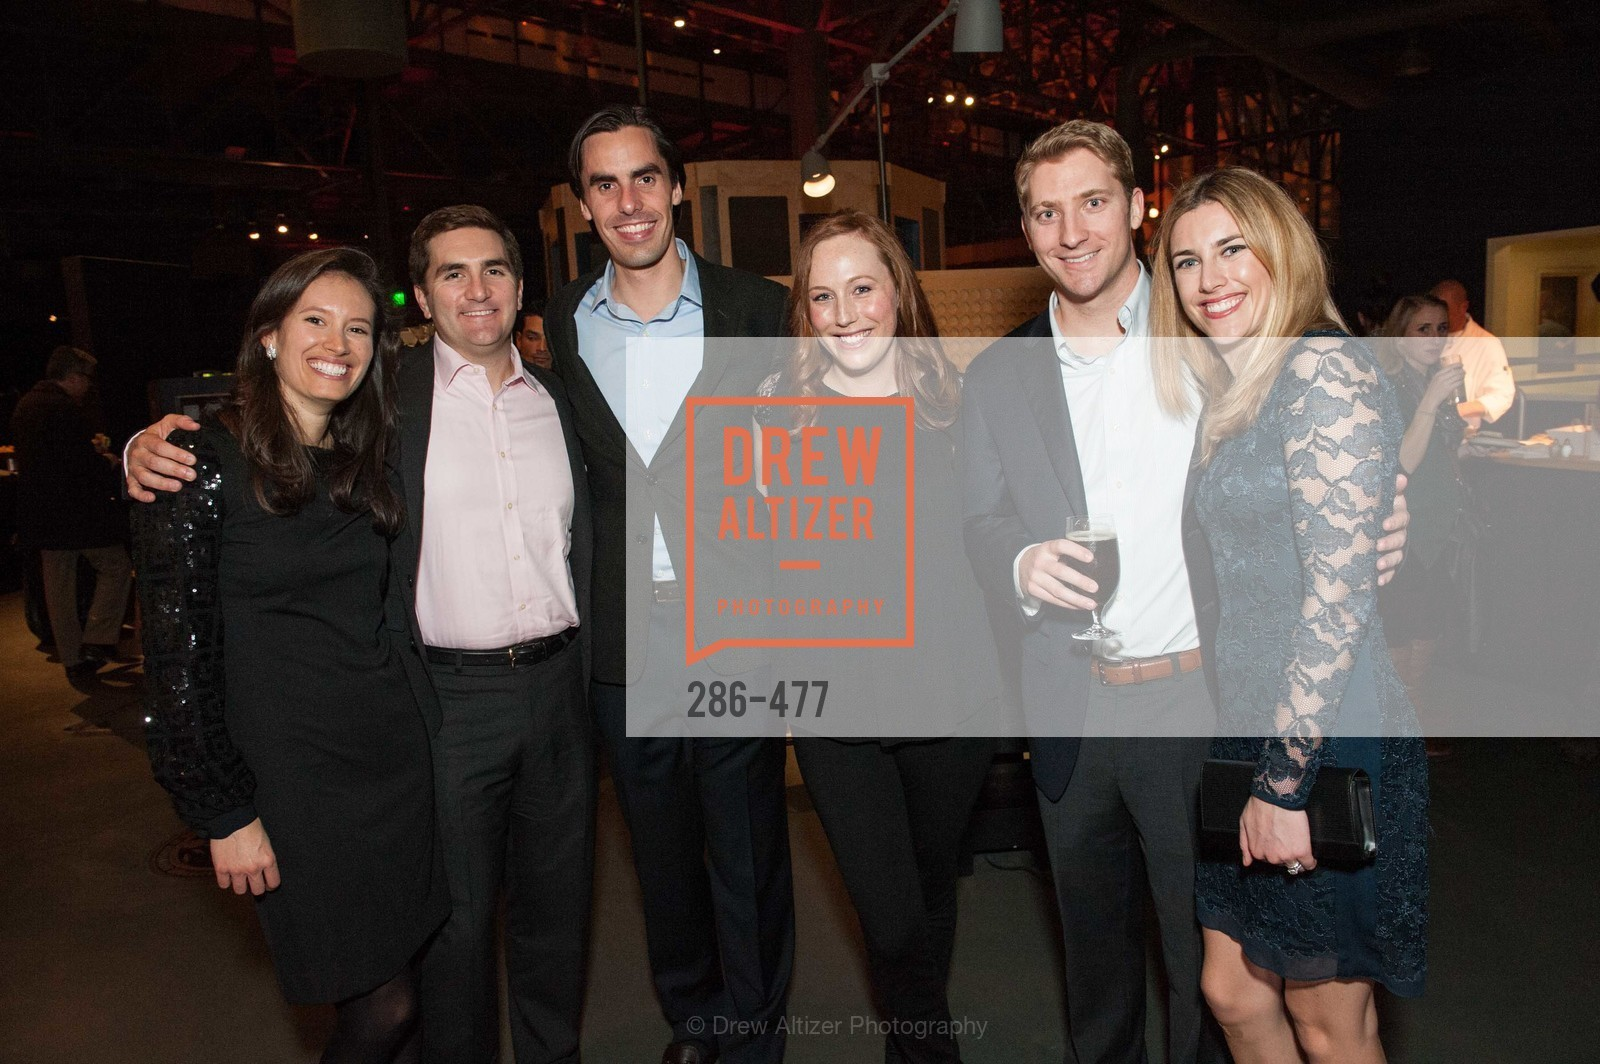 Blaire Fernandez, Christian Robinson, Spencer Rawls, Gretchen Rawls, Adam Hahn, Katie Hahn, THE EXPLORATORIUM LAB Presents 2014 Science of Cocktails, US. US, January 24th, 2014,Drew Altizer, Drew Altizer Photography, full-service agency, private events, San Francisco photographer, photographer california